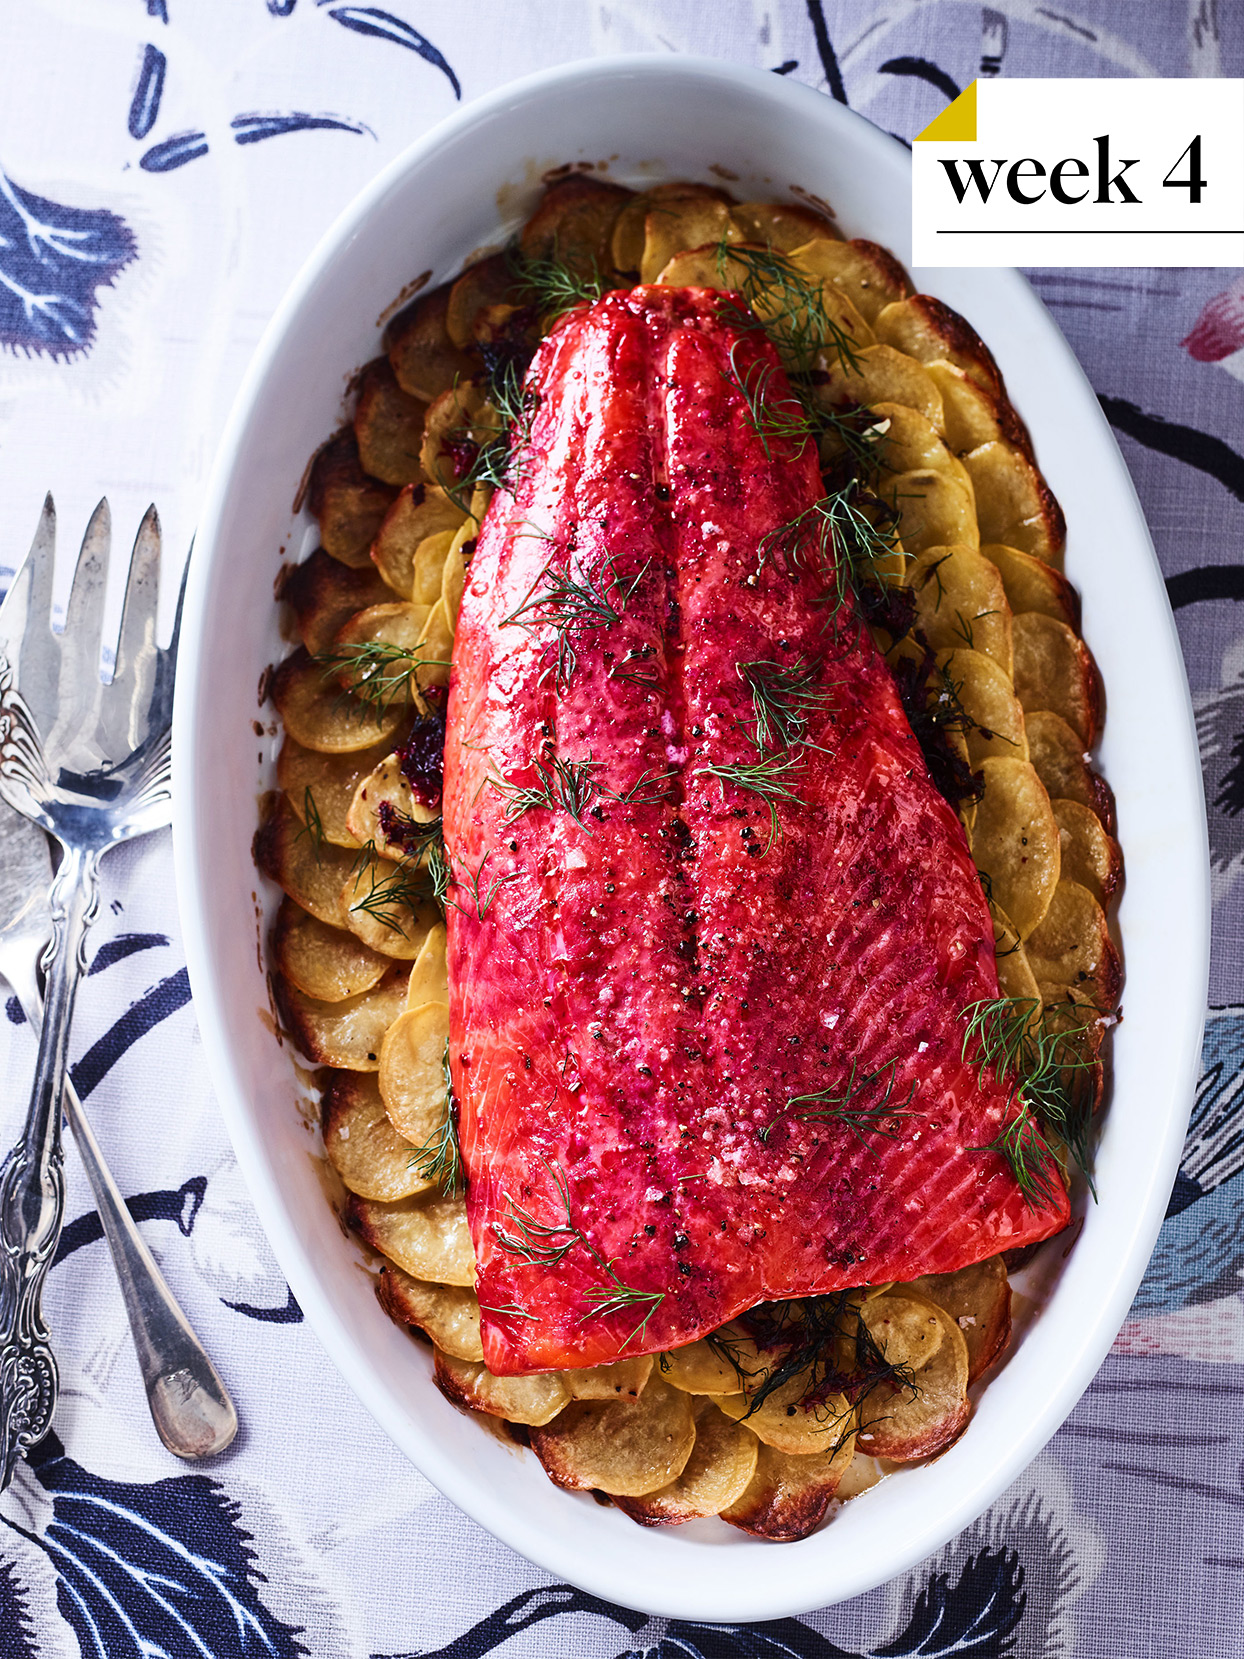 beet and dill roasted wild salmon in a white casserole dish